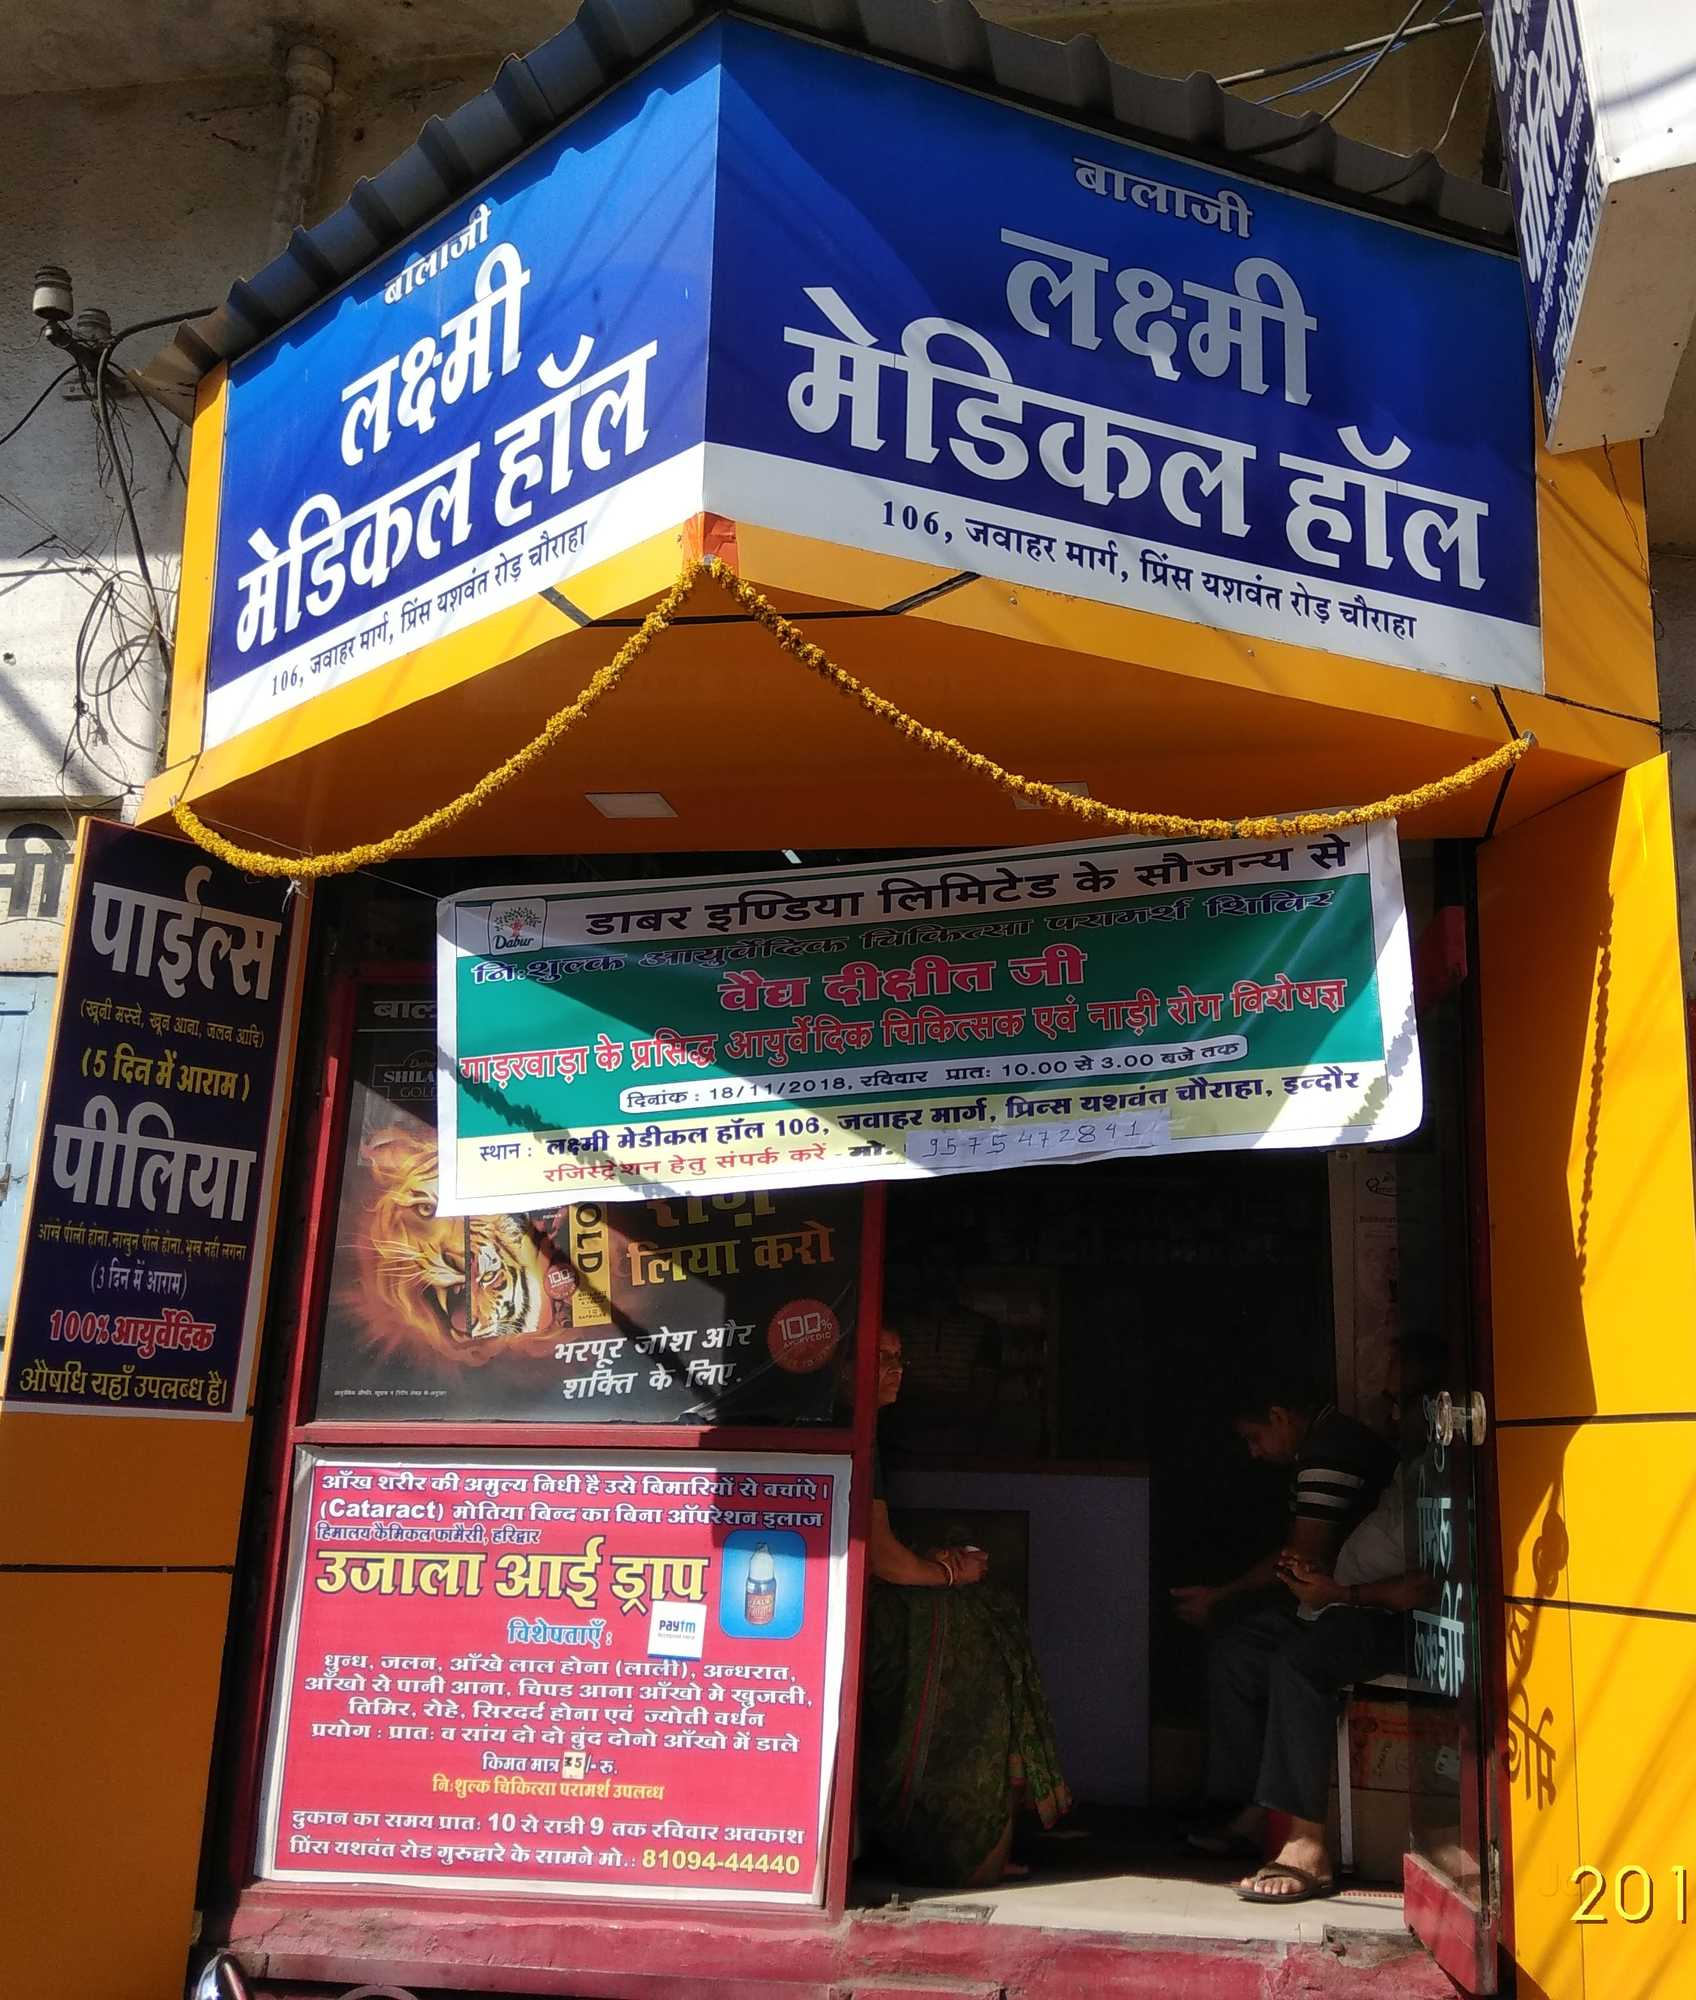 Top 10 Dr Reckeweg Homeopathic Medicine Retailers in Indore - Best